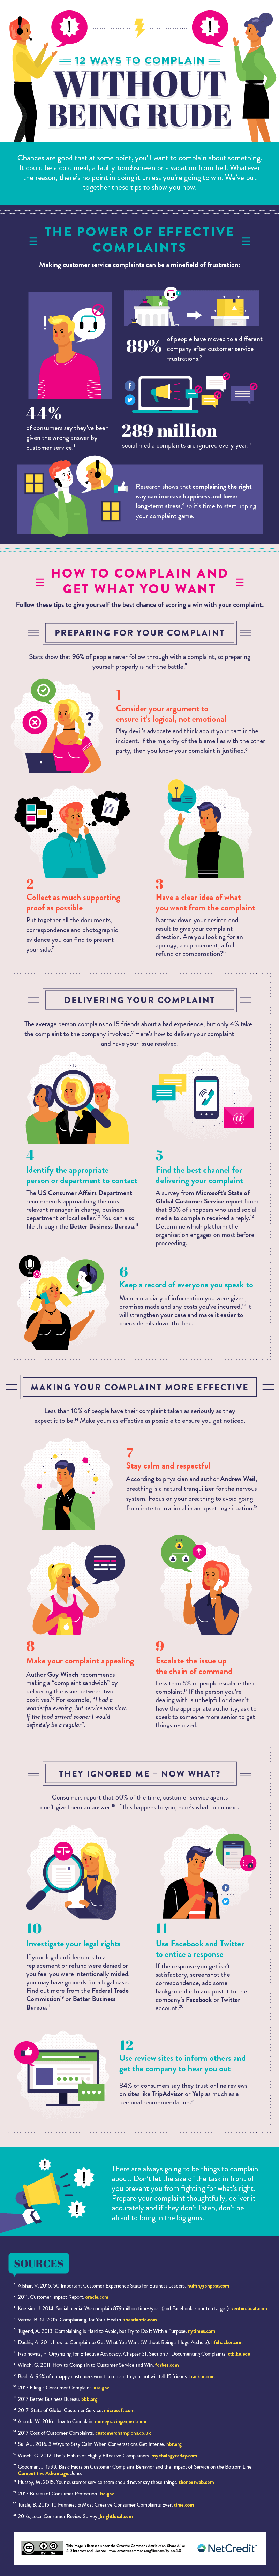 Complain without being rude infographic